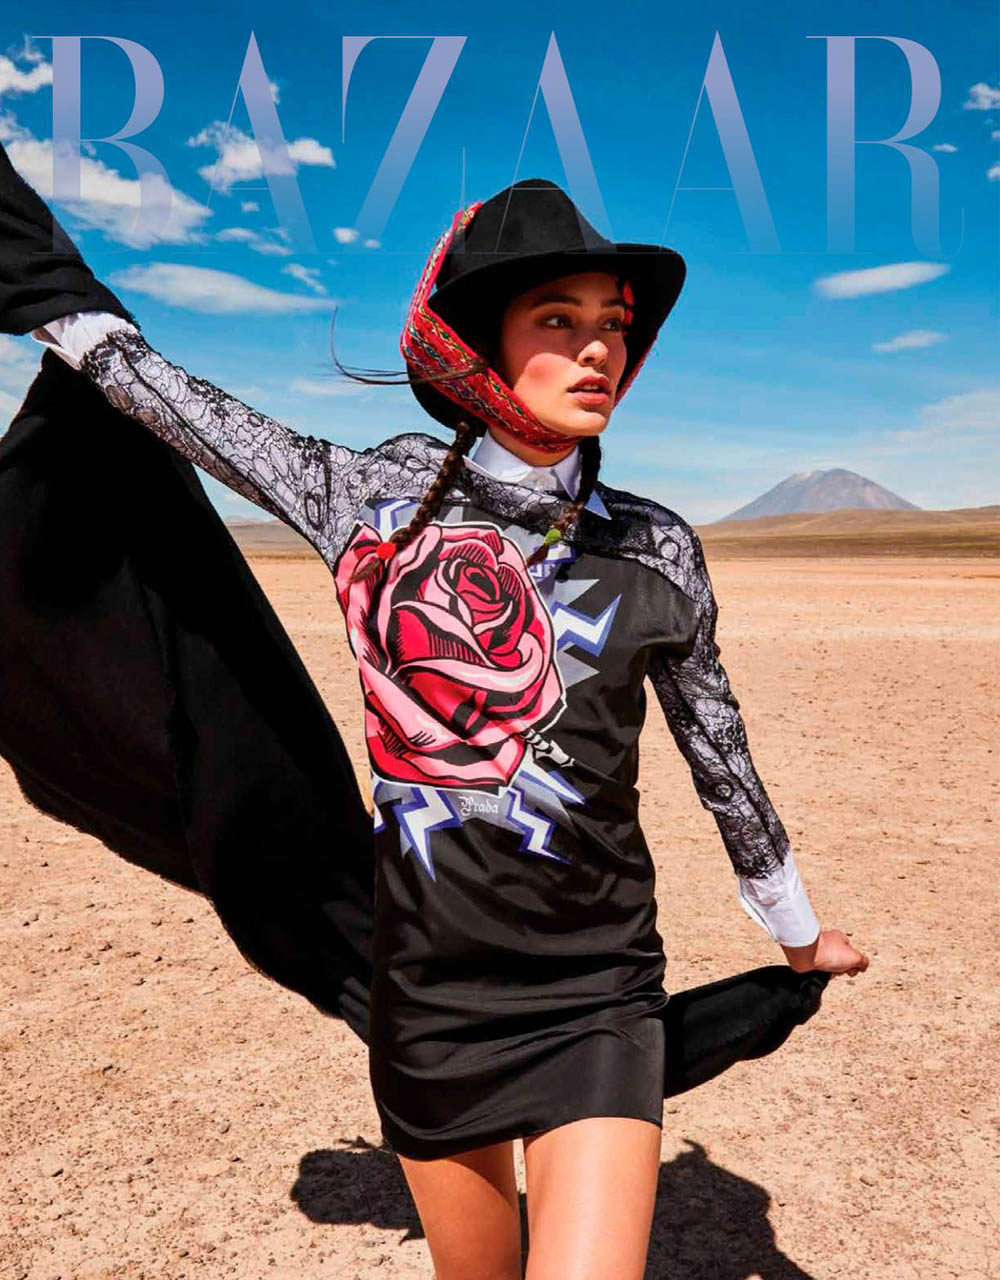 Elizabeth-Salt-covers-Harper's-Bazaar-Mexico-Latin-America-August-2019-by-Enrique-Vega-2.jpg